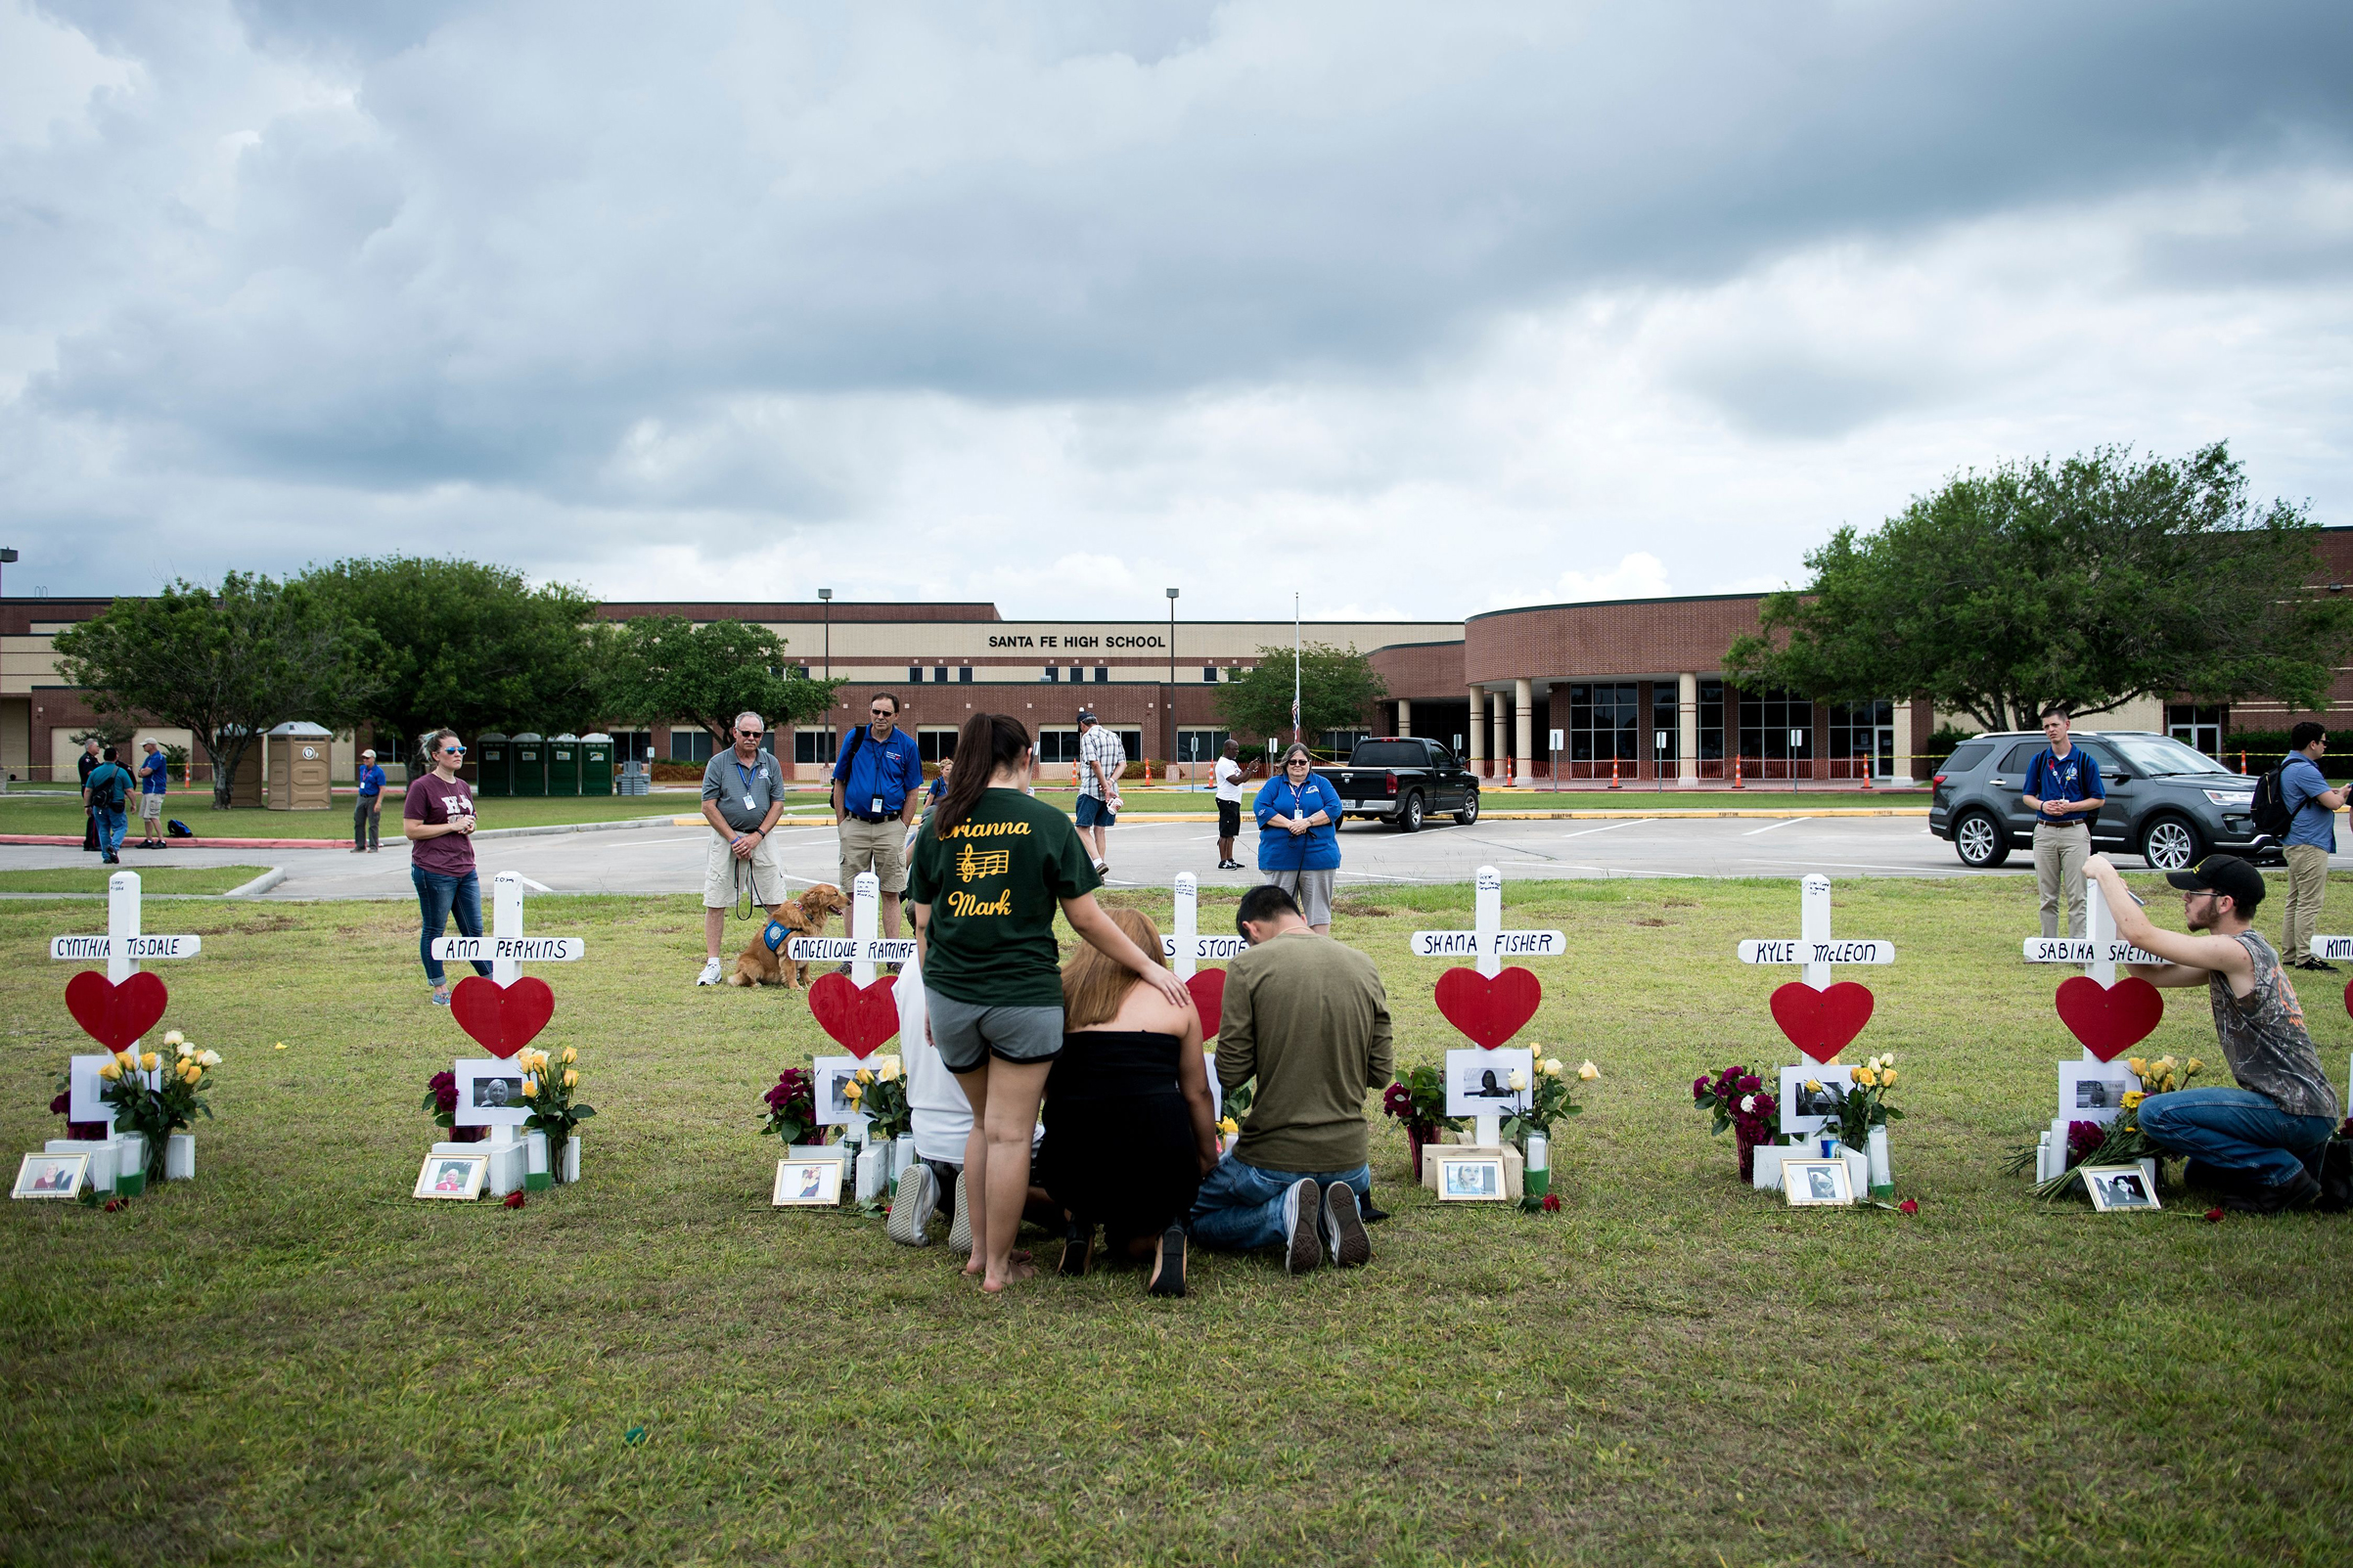 People visit a cross for Christopher Stone at a memorial for the victims of the Santa Fe High School shooting on May 21, 2018 in Santa Fe, Texas.